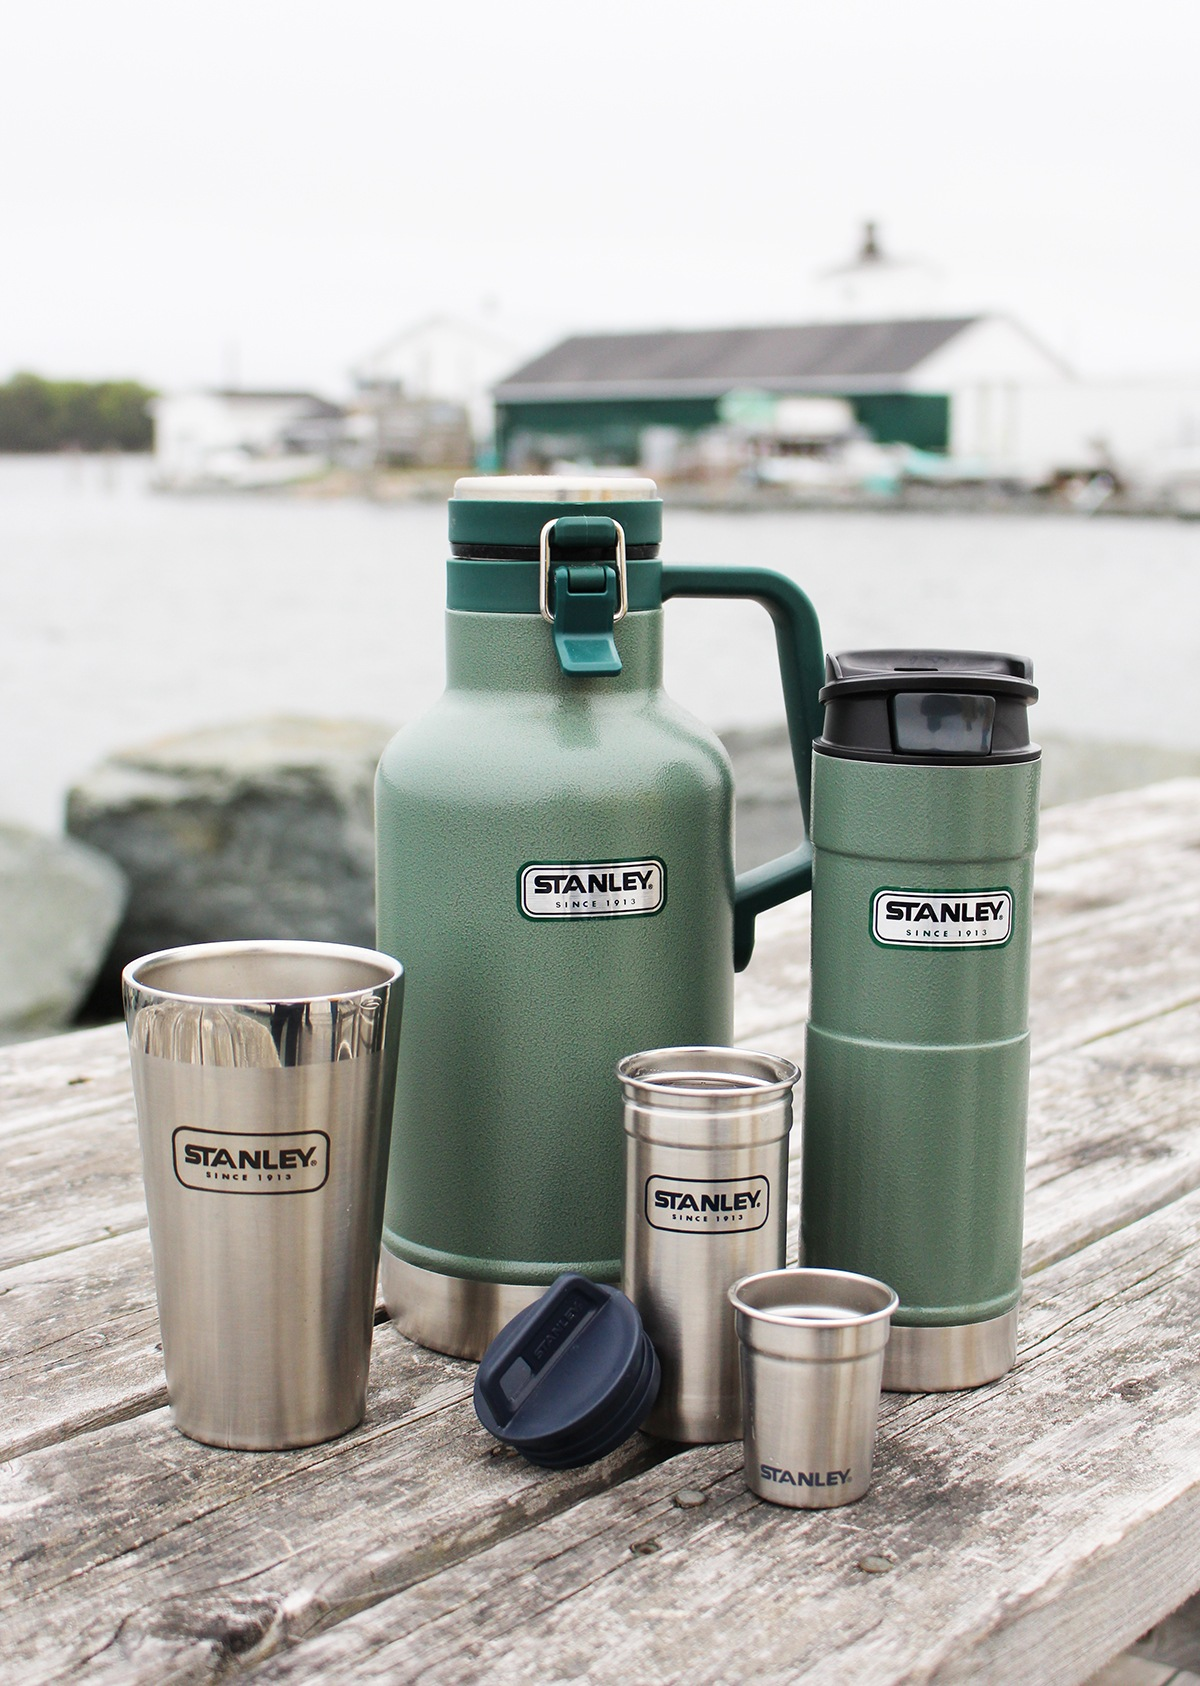 Father's Day gift ideas from Stanley Brand